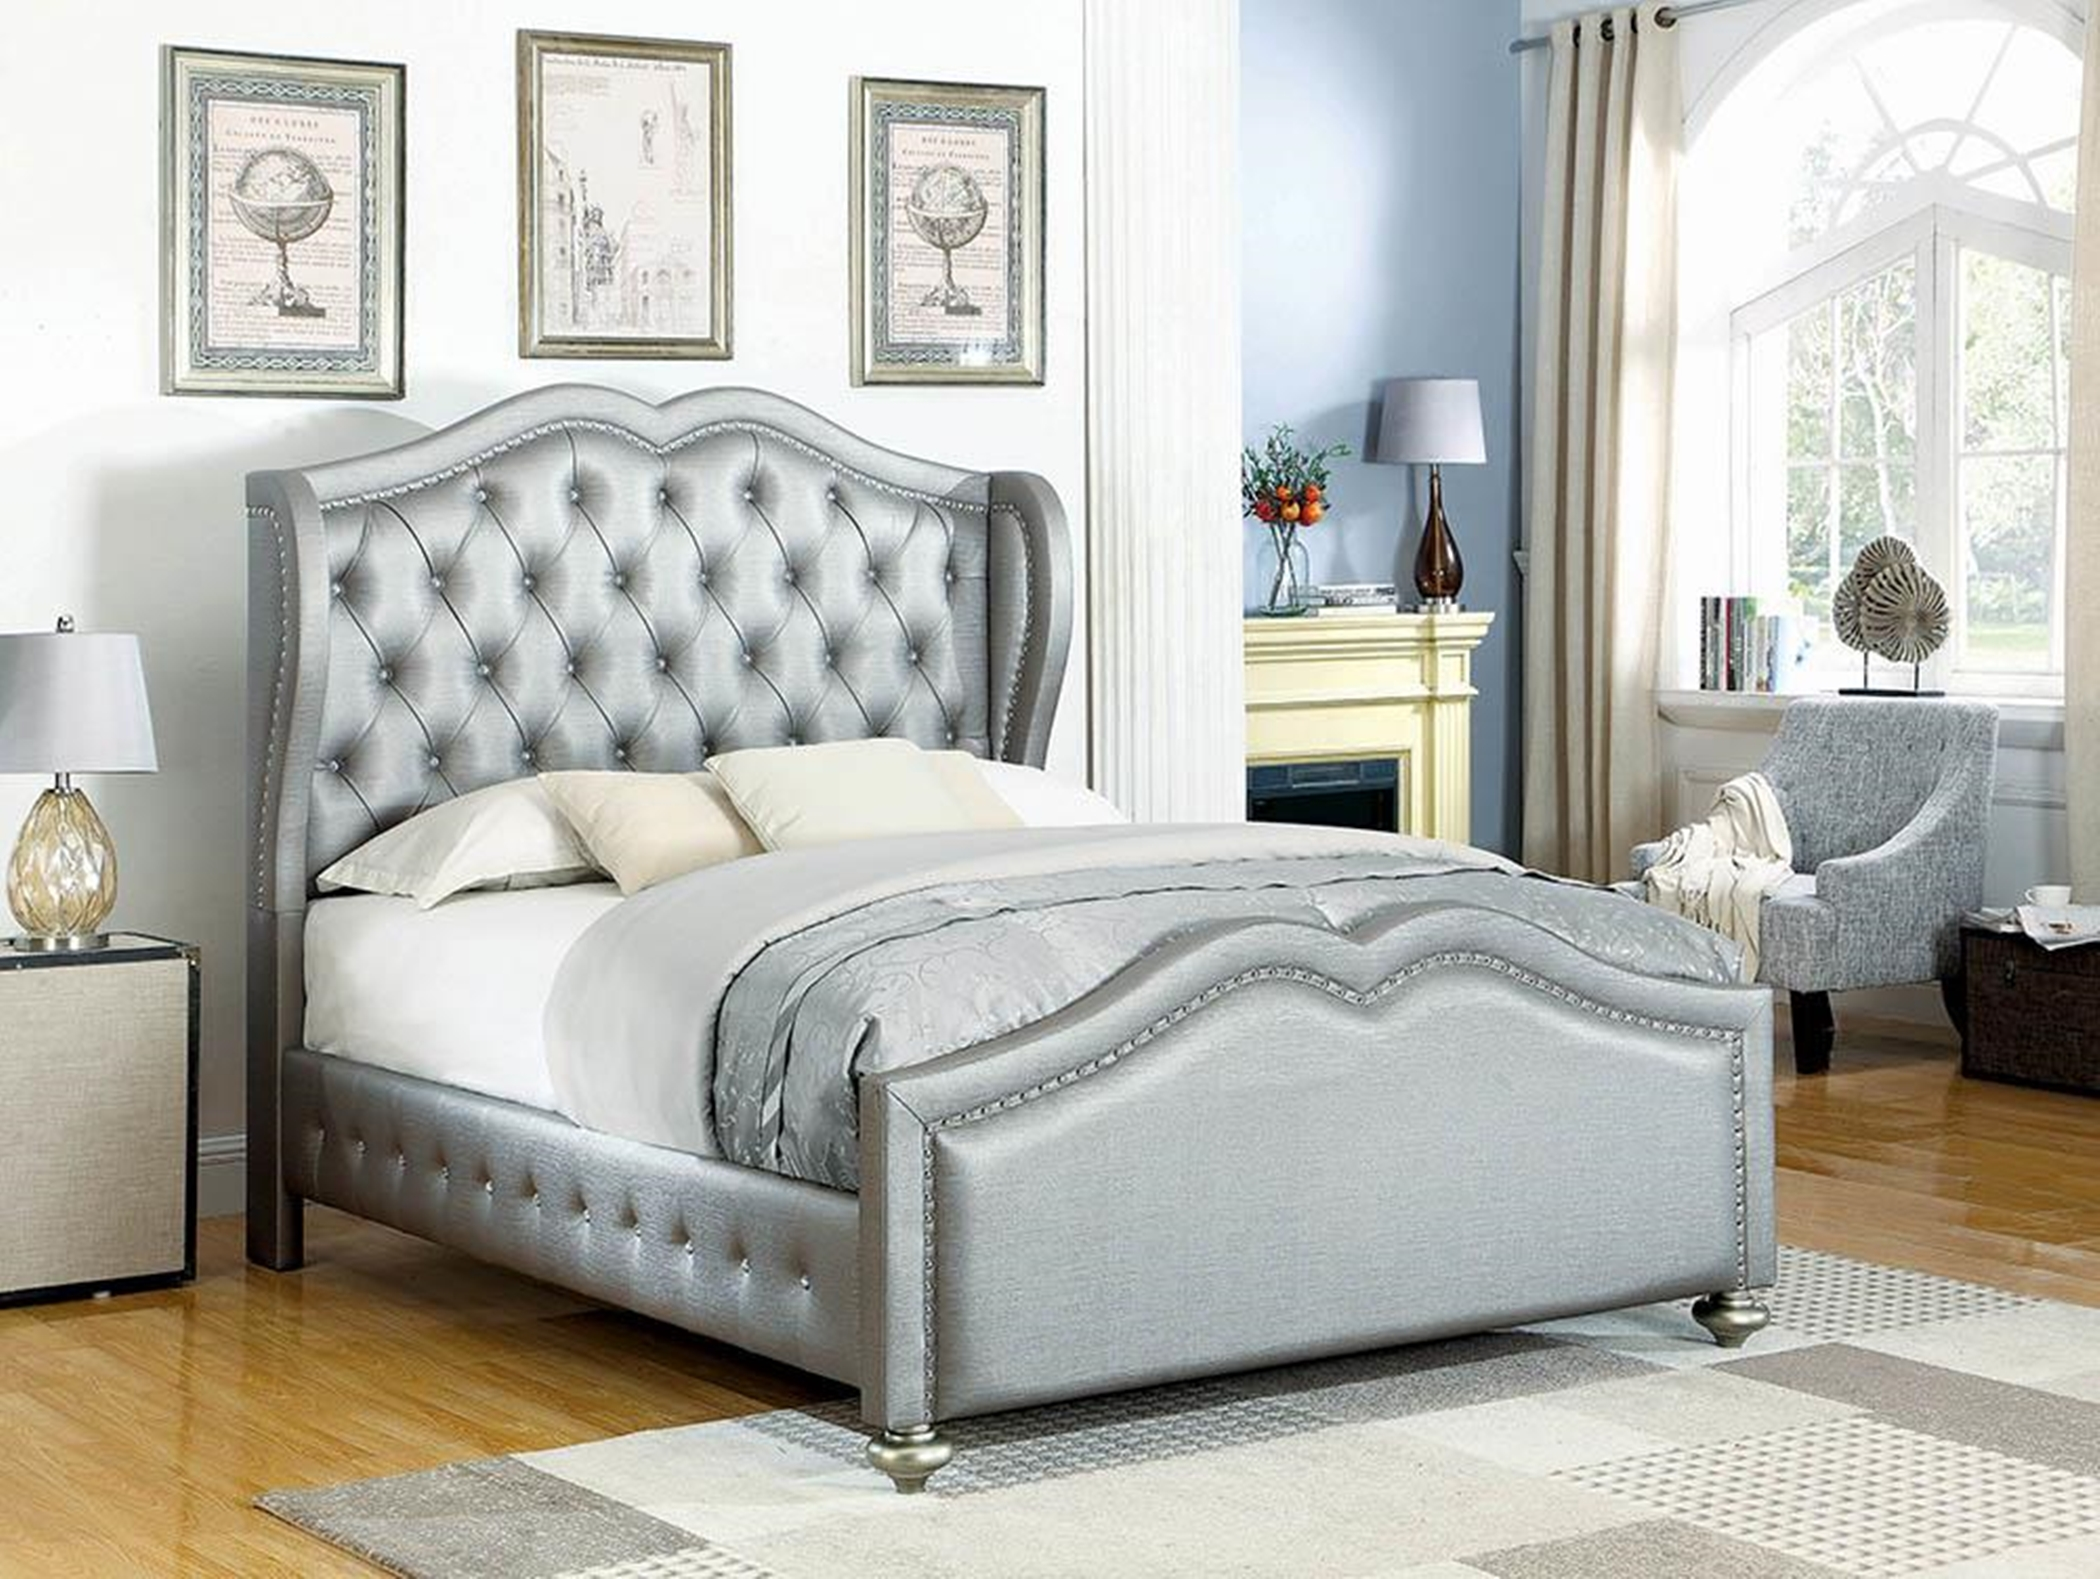 Belmont Grey Upholstered King Bed